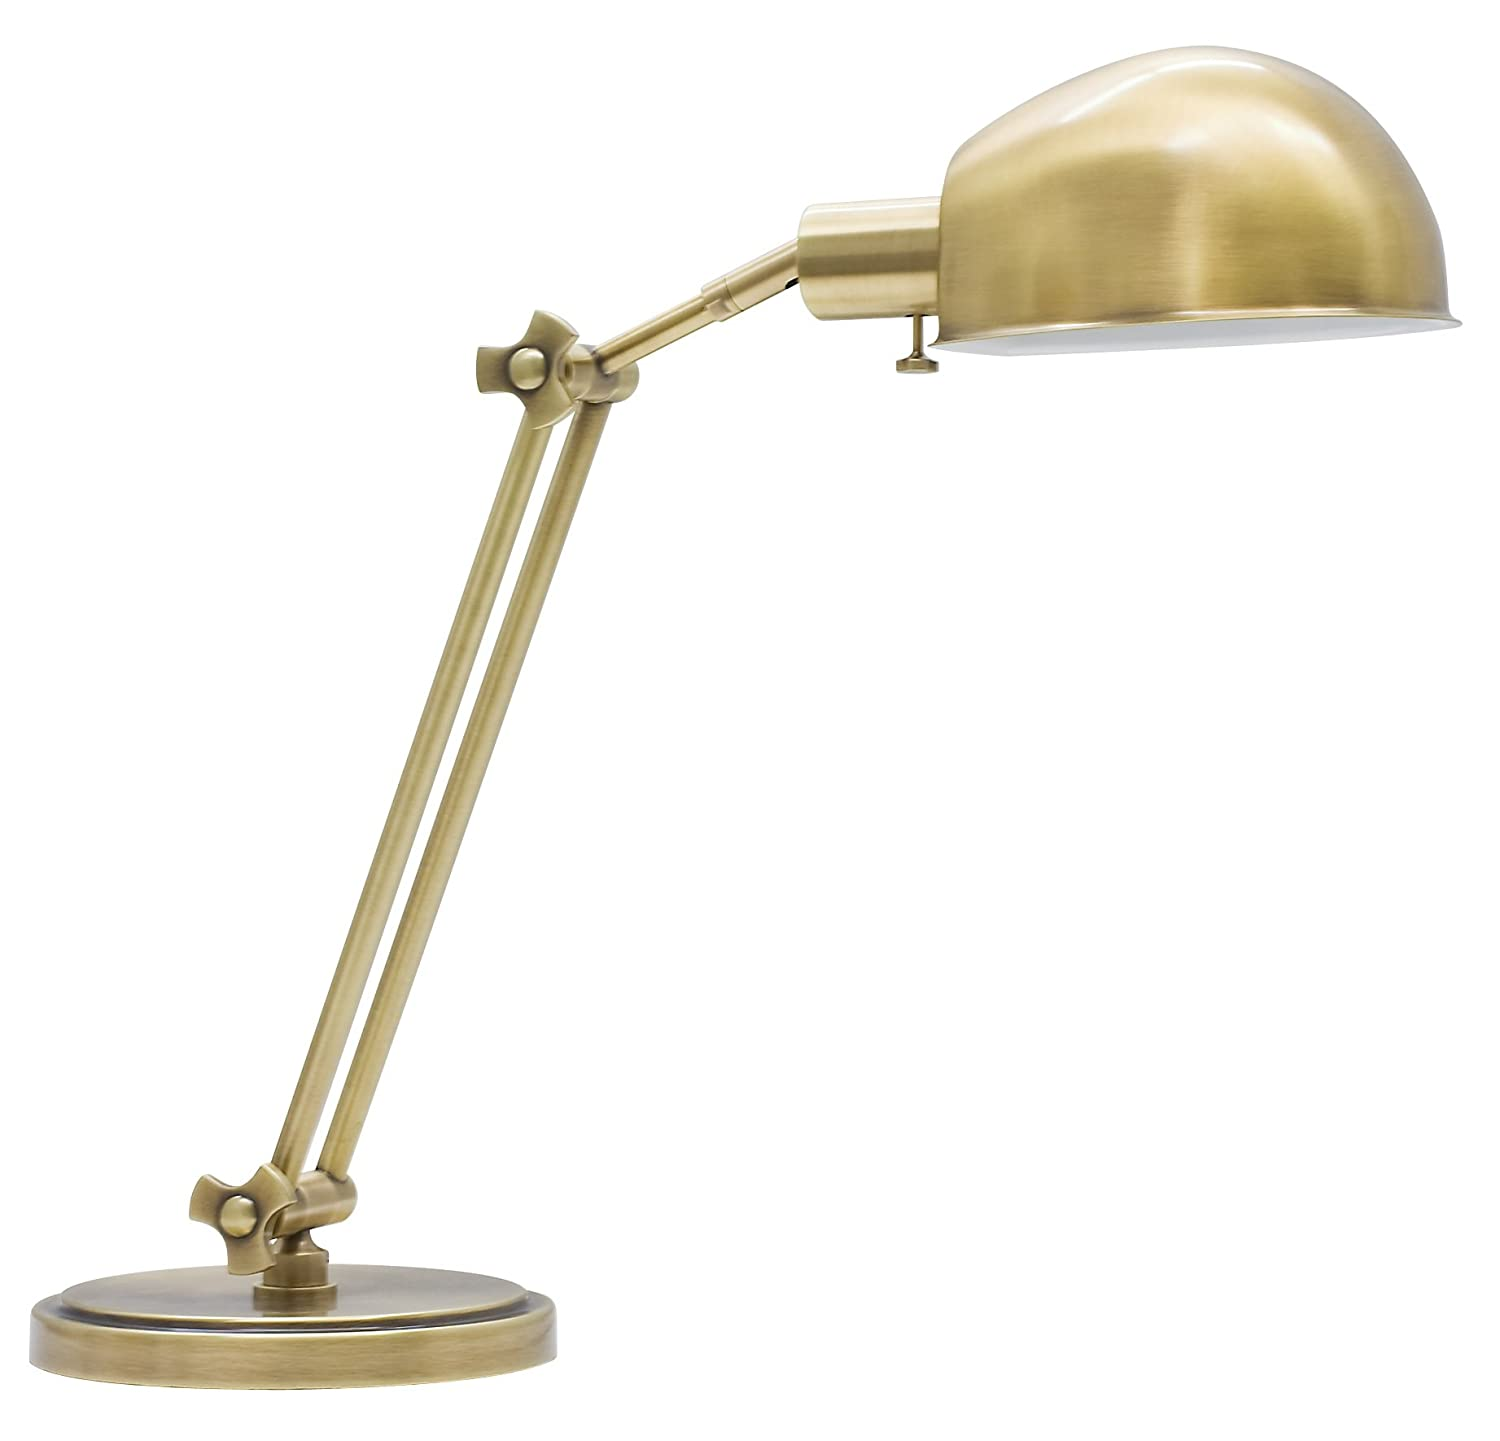 Excellent House Of Troy Lighting Ad450 Ab House Of Troy Addison 1Lt Adjustable Desk Lamp Antique Brass Finish 24 X 8 X 16 25 Download Free Architecture Designs Xaembritishbridgeorg